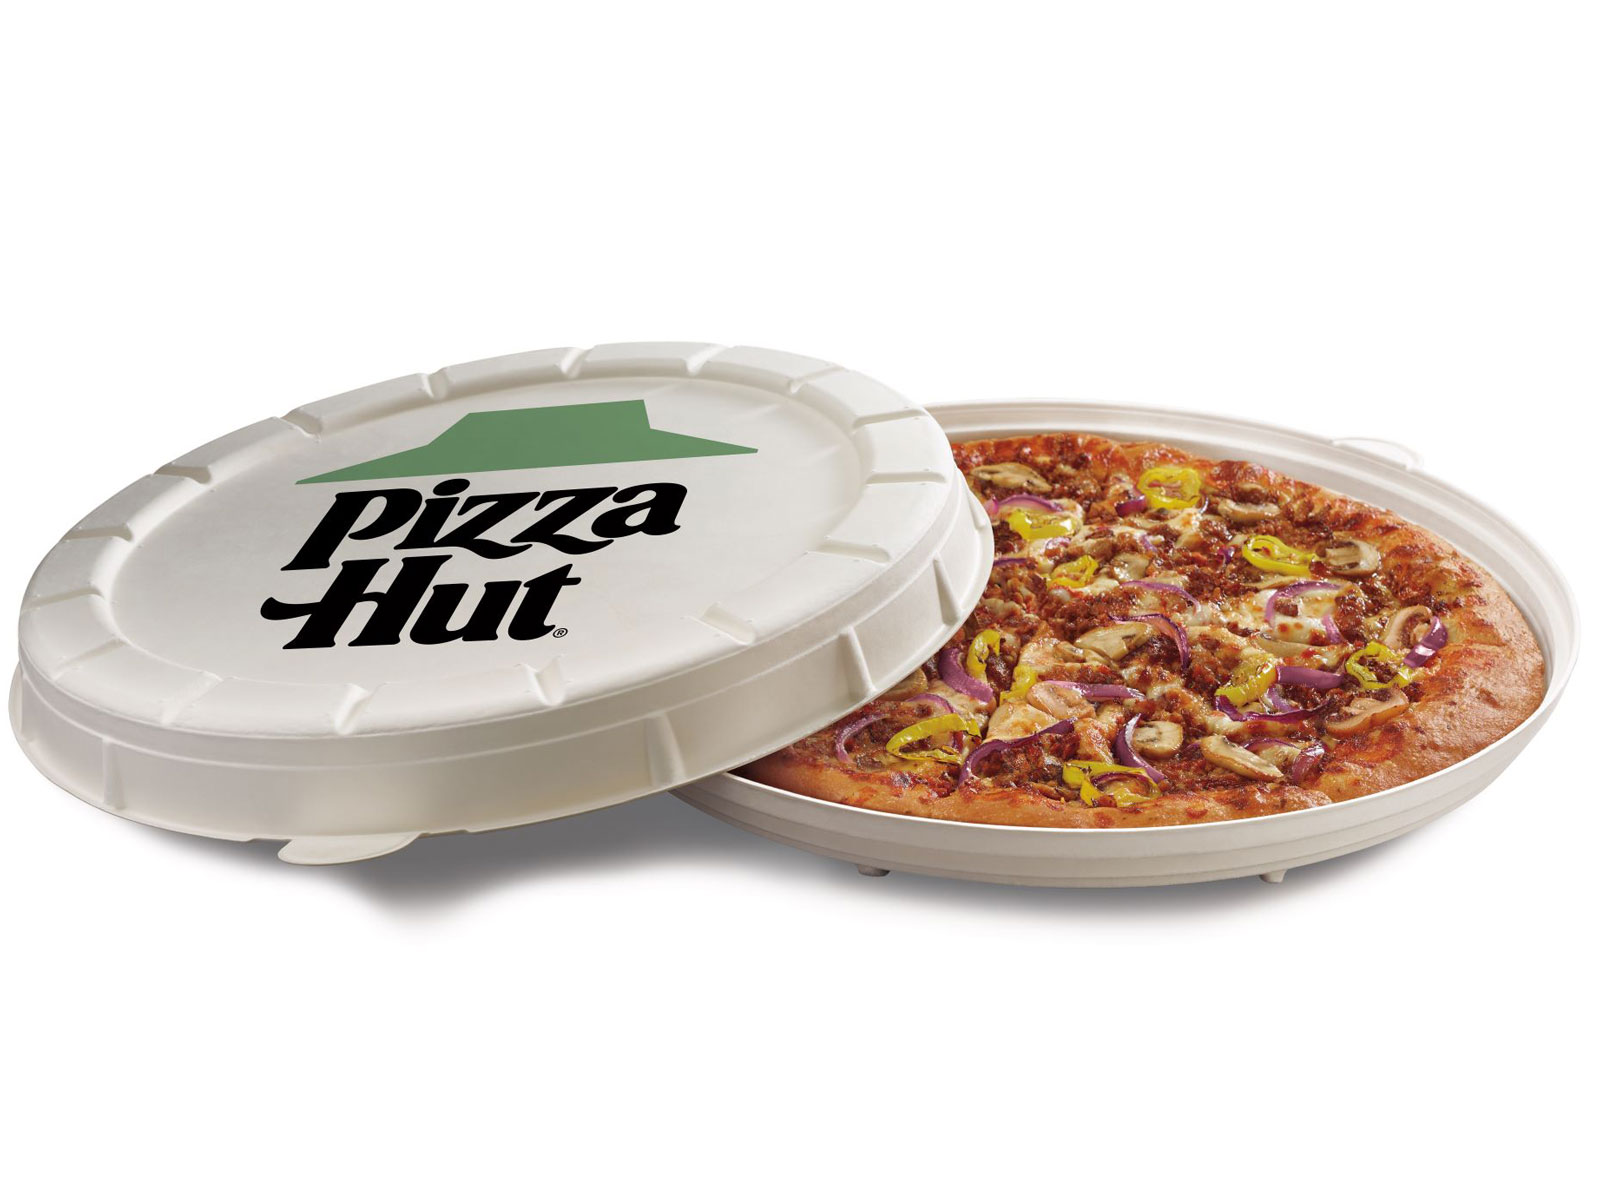 pizza-hut-round-box-embed-FT-BLOG1019.jpg